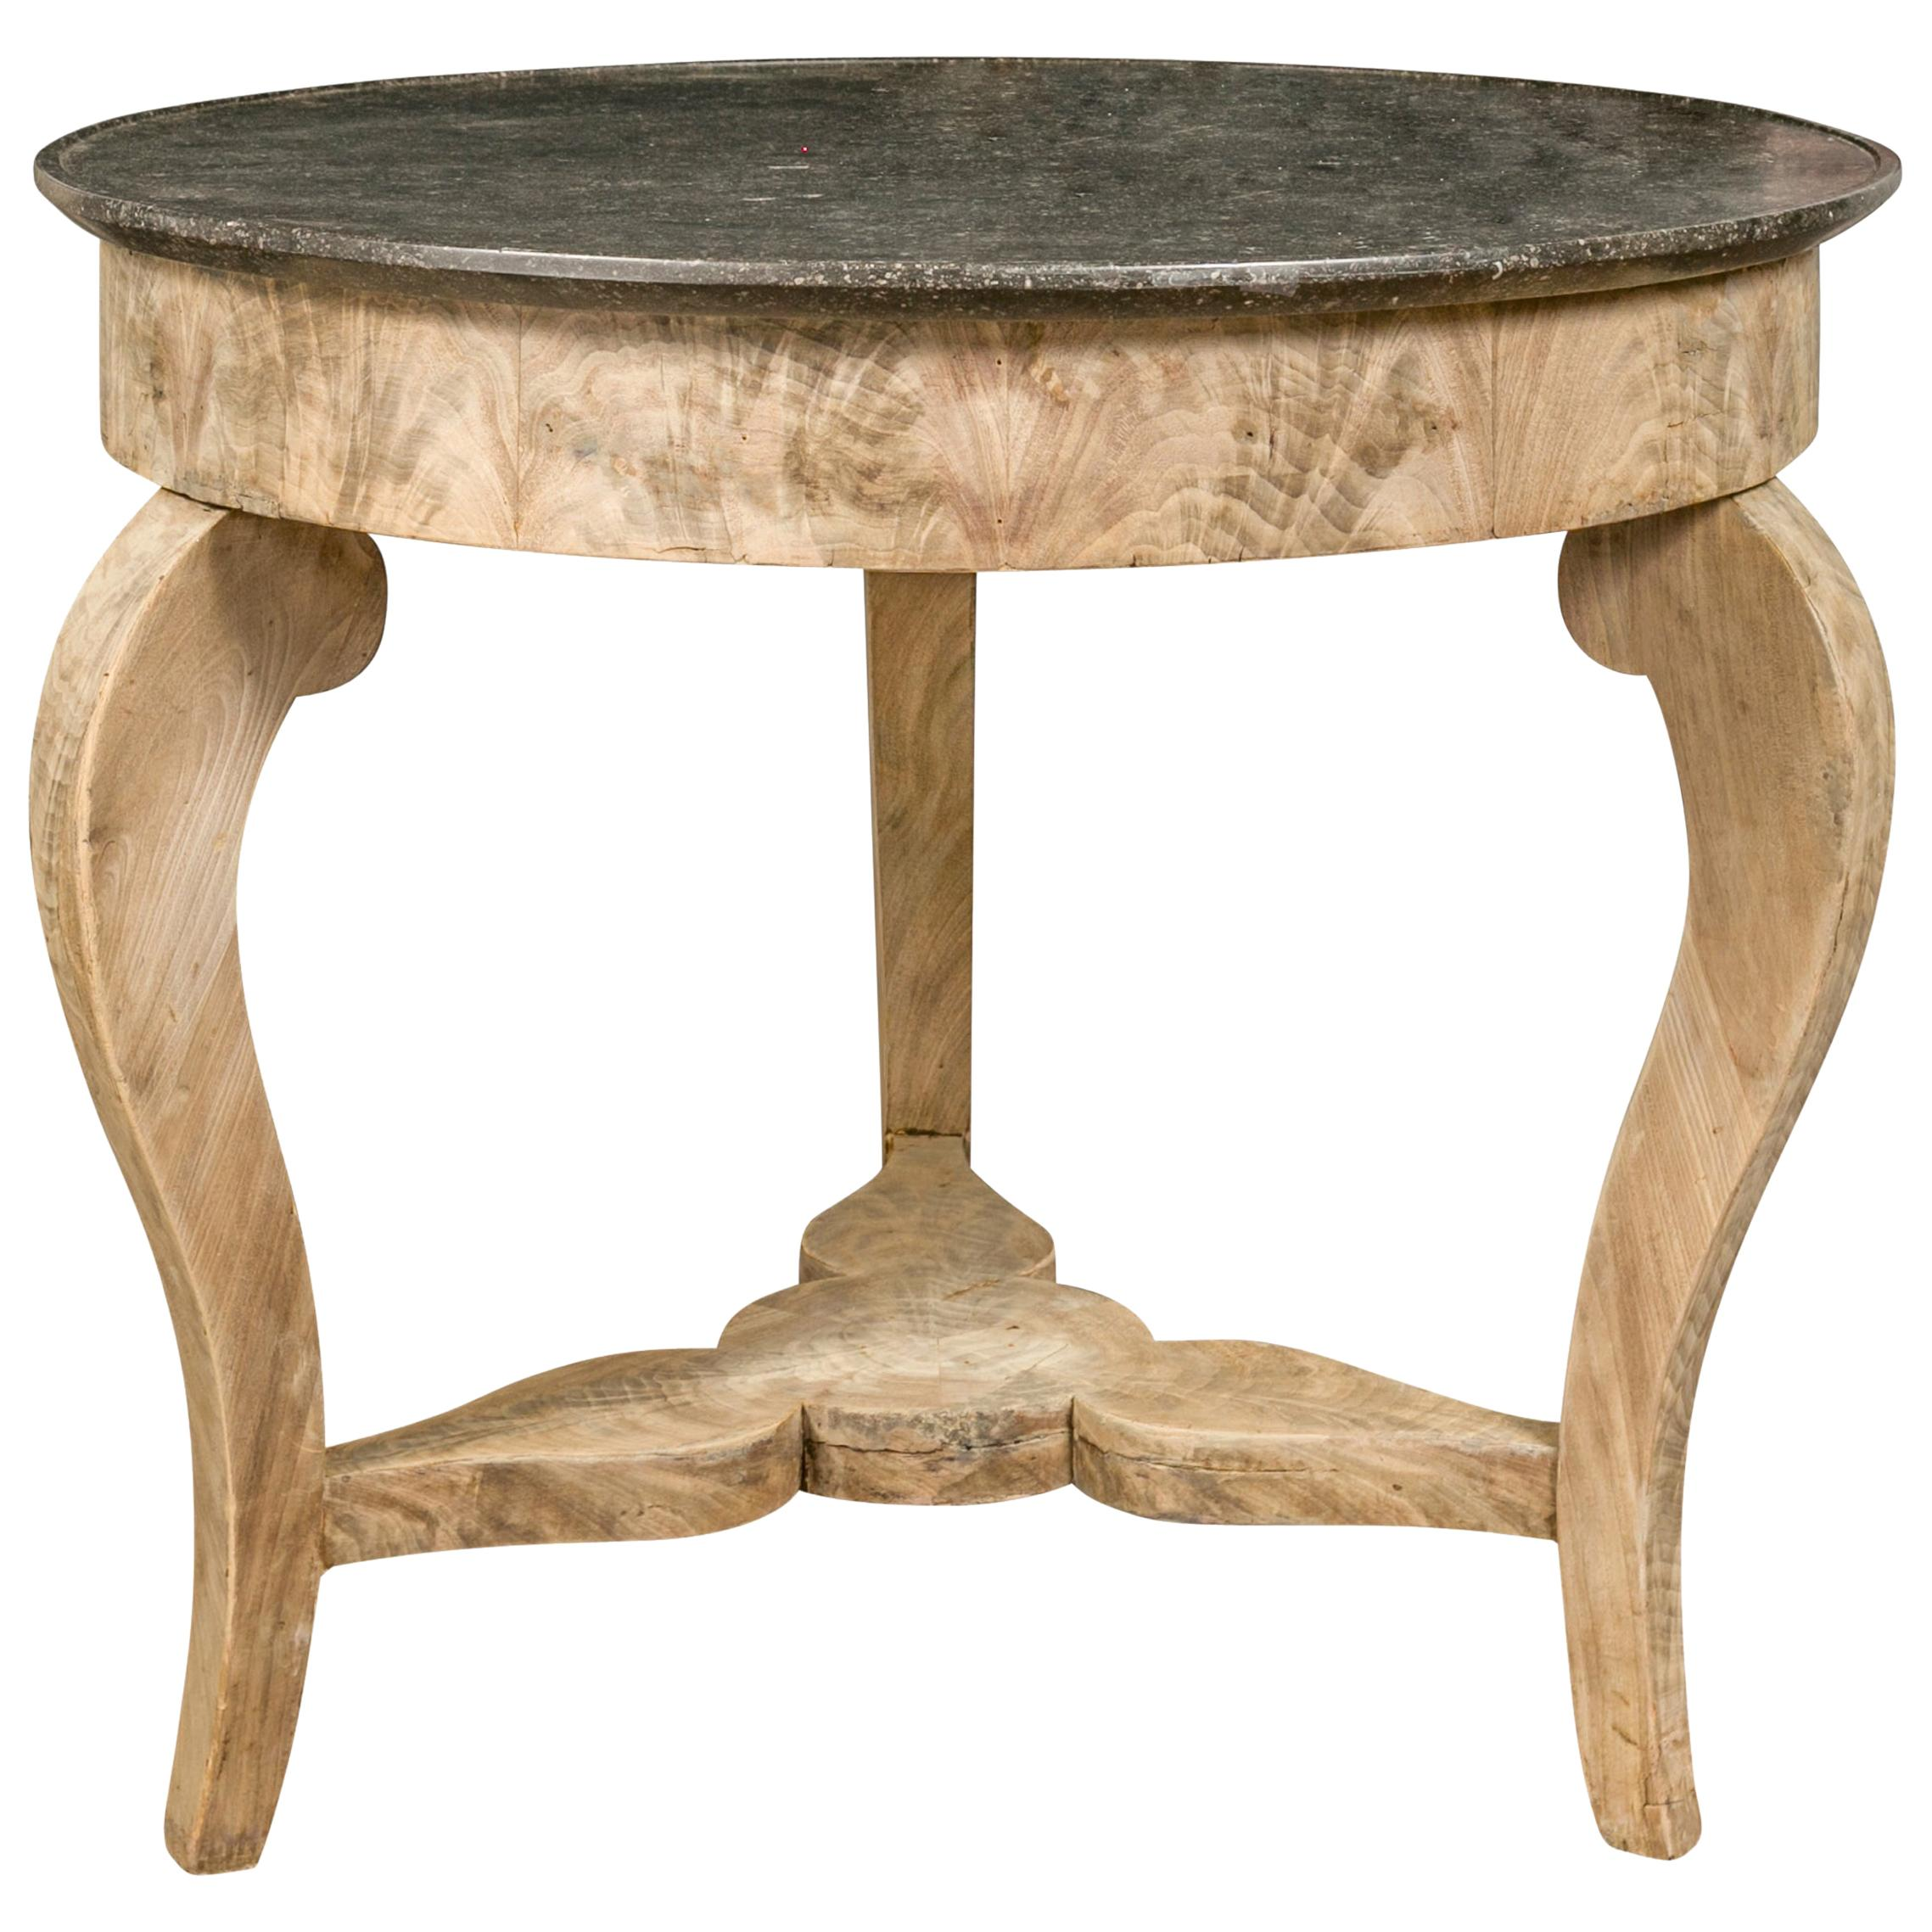 French 1820s Restauration Period Bleached Walnut Center Table with Marble Top